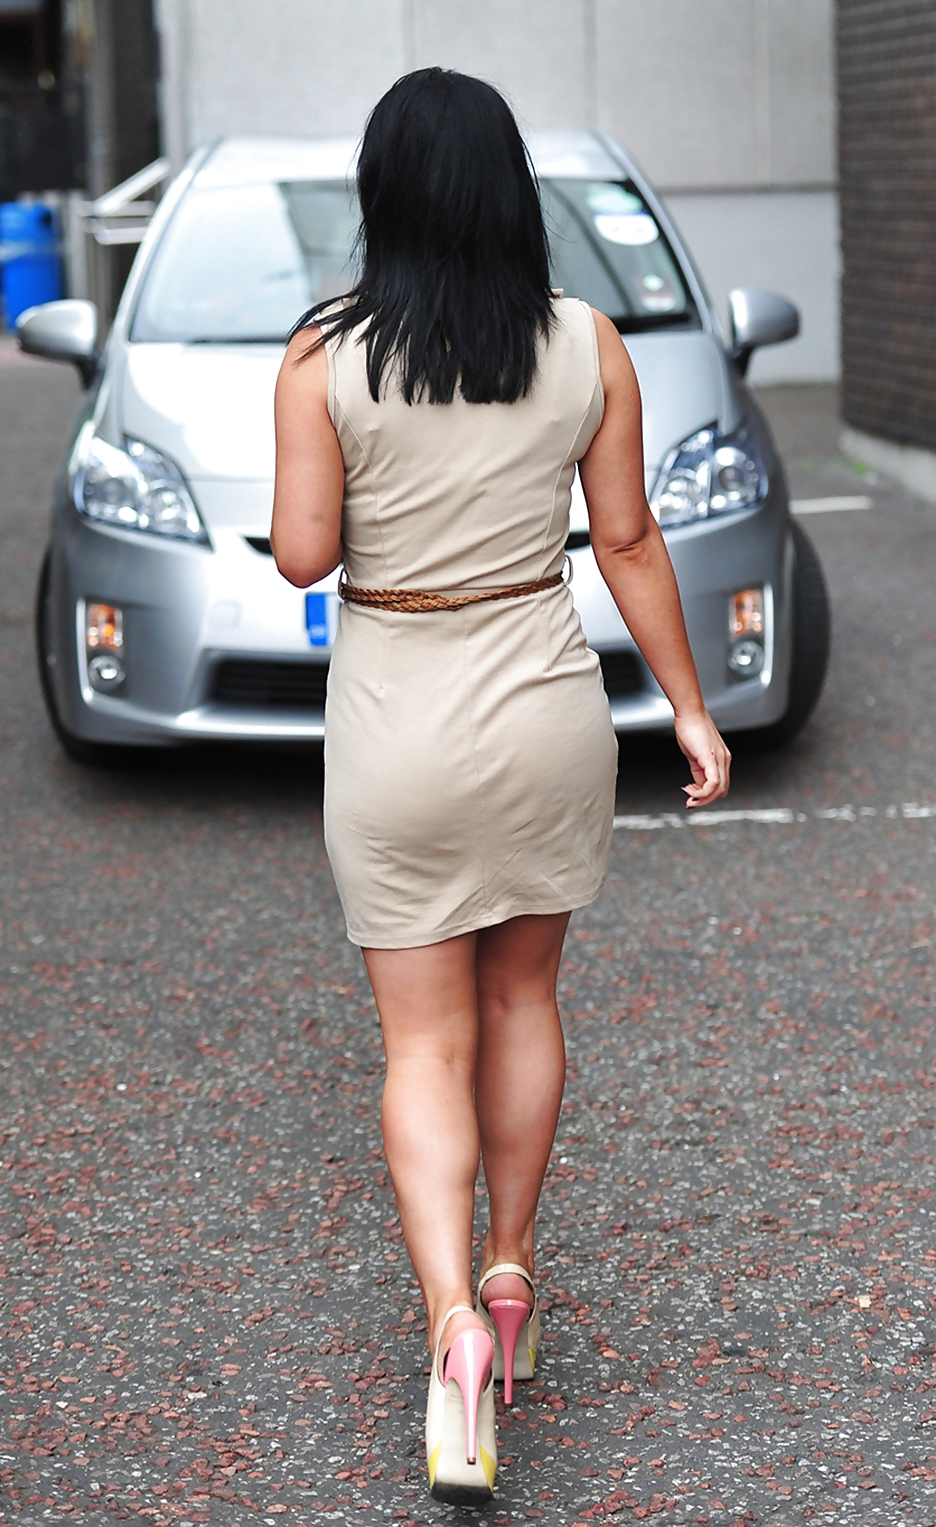 shona-mcgarty-bare-ass-pictures